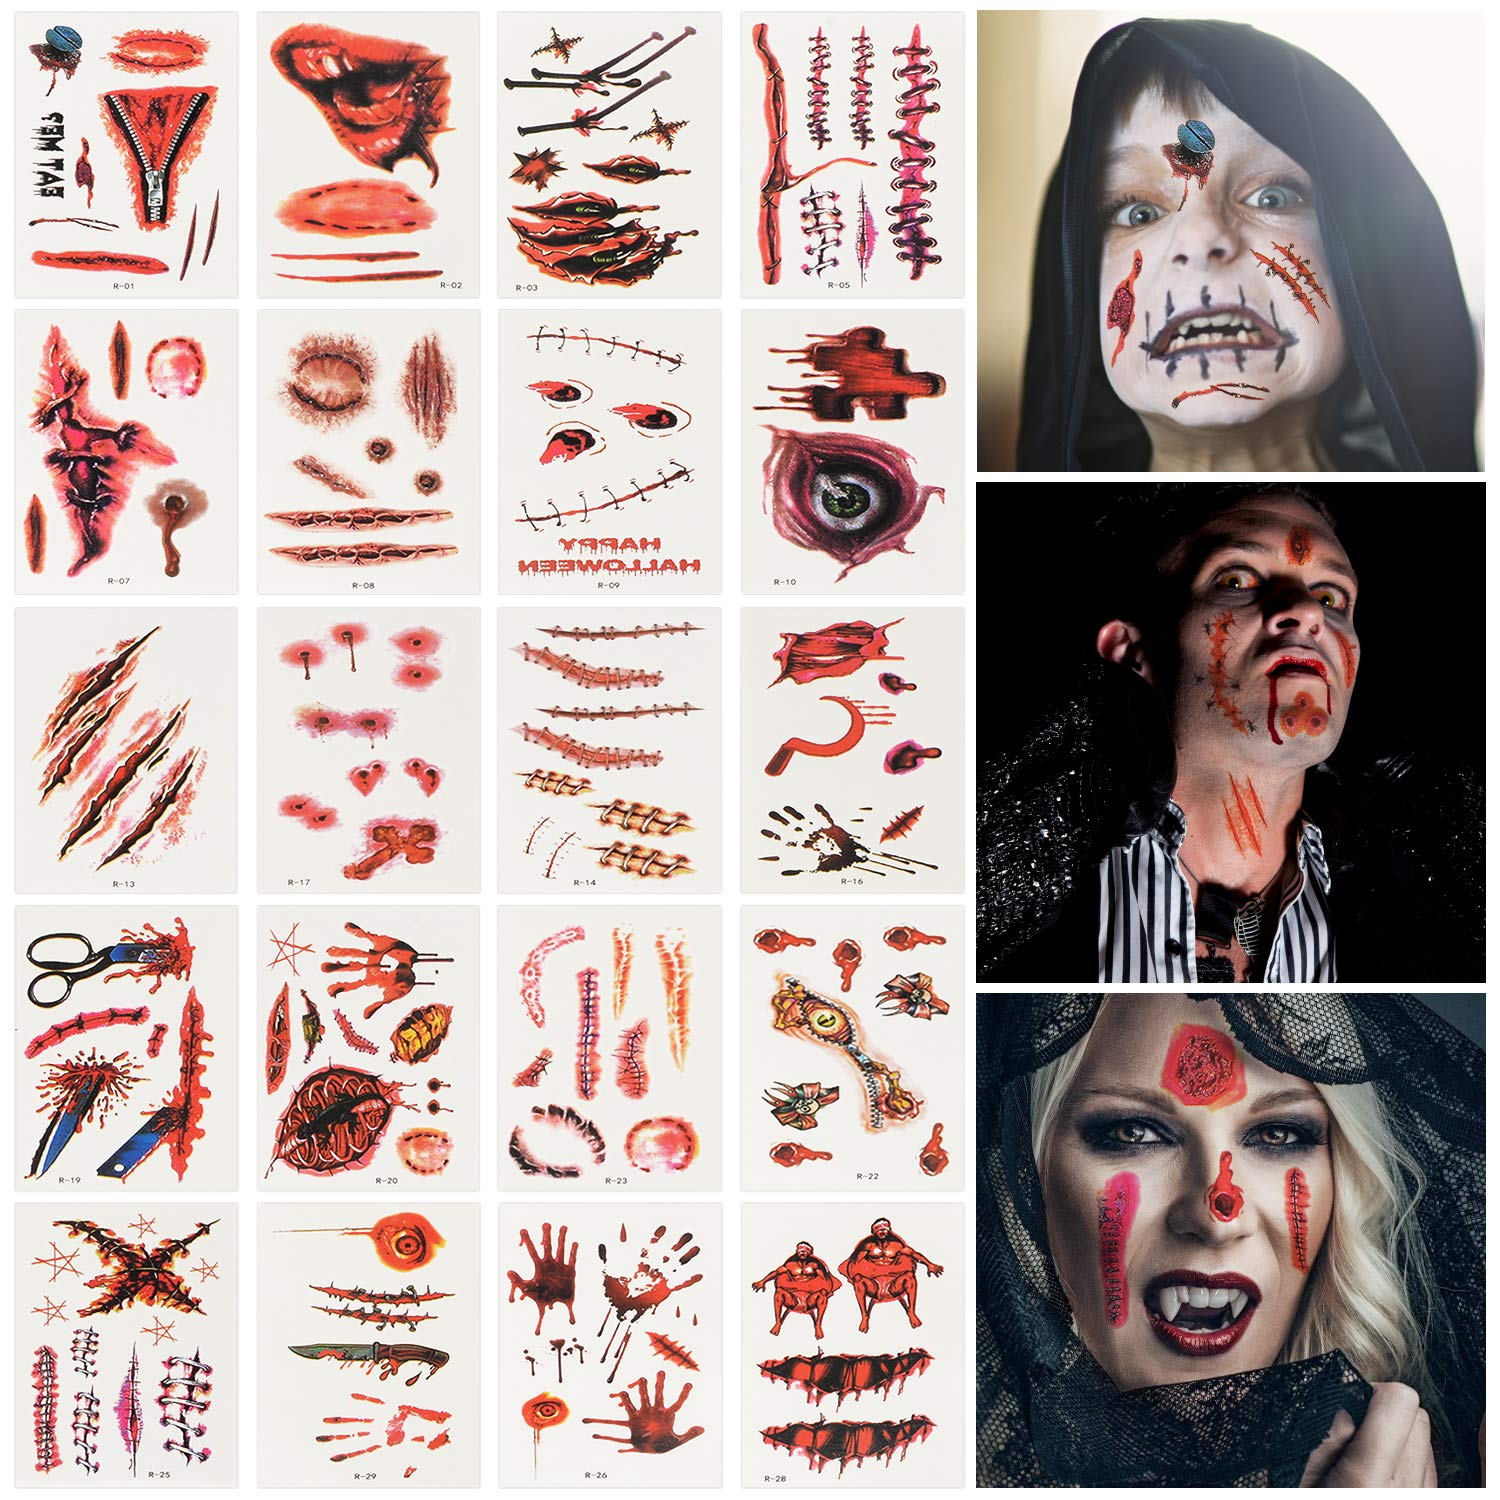 TITE 30 Sheets Halloween Tattoos Sticker Scar Wound Bloody Horror Props Temporary Stickers Party Cosplay Prank Masquerade